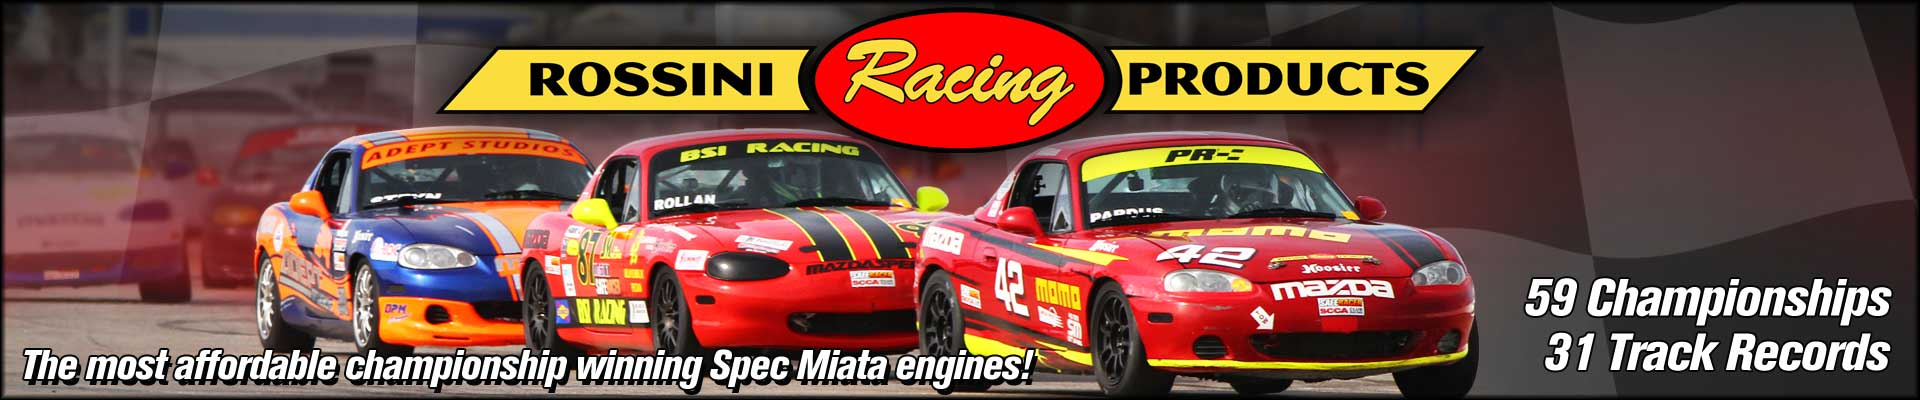 Rossini Racing